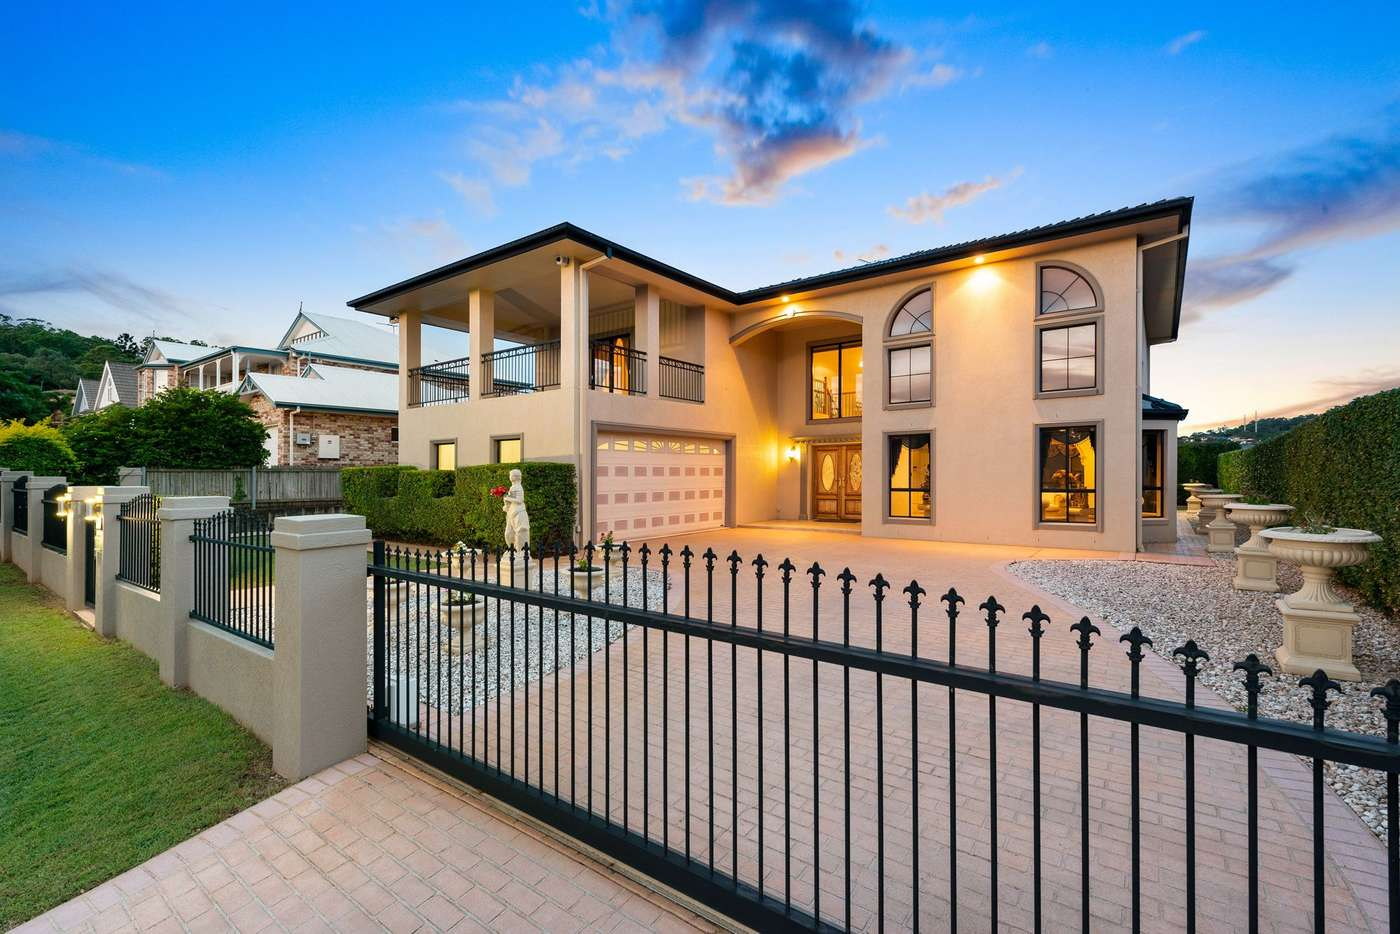 Main view of Homely house listing, 57 Sunset Place, Carindale QLD 4152